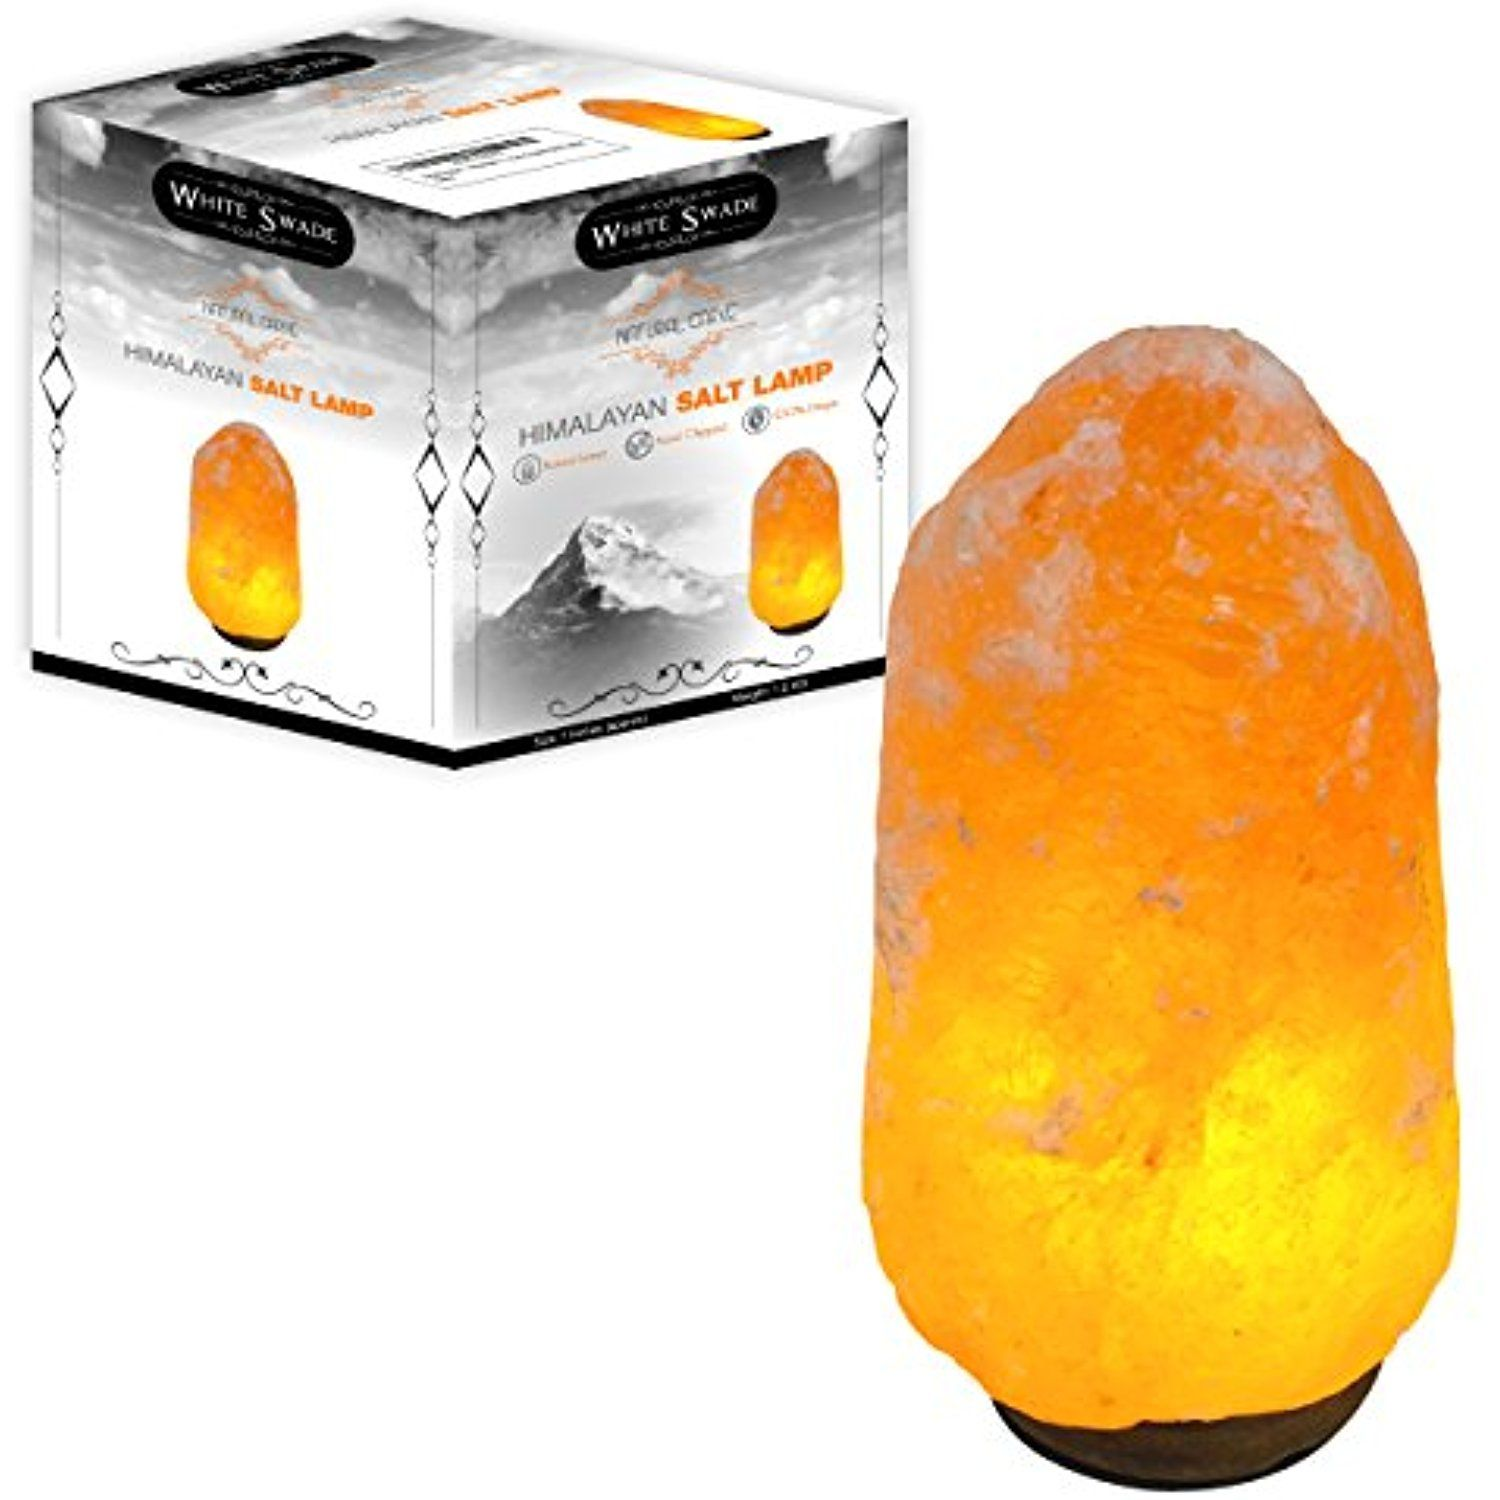 "Genuine Himalayan Salt Lamp Simple Whiteswade 7"" Himalayan Salt Lamp With Dimmer Switch Genuine Neem Review"